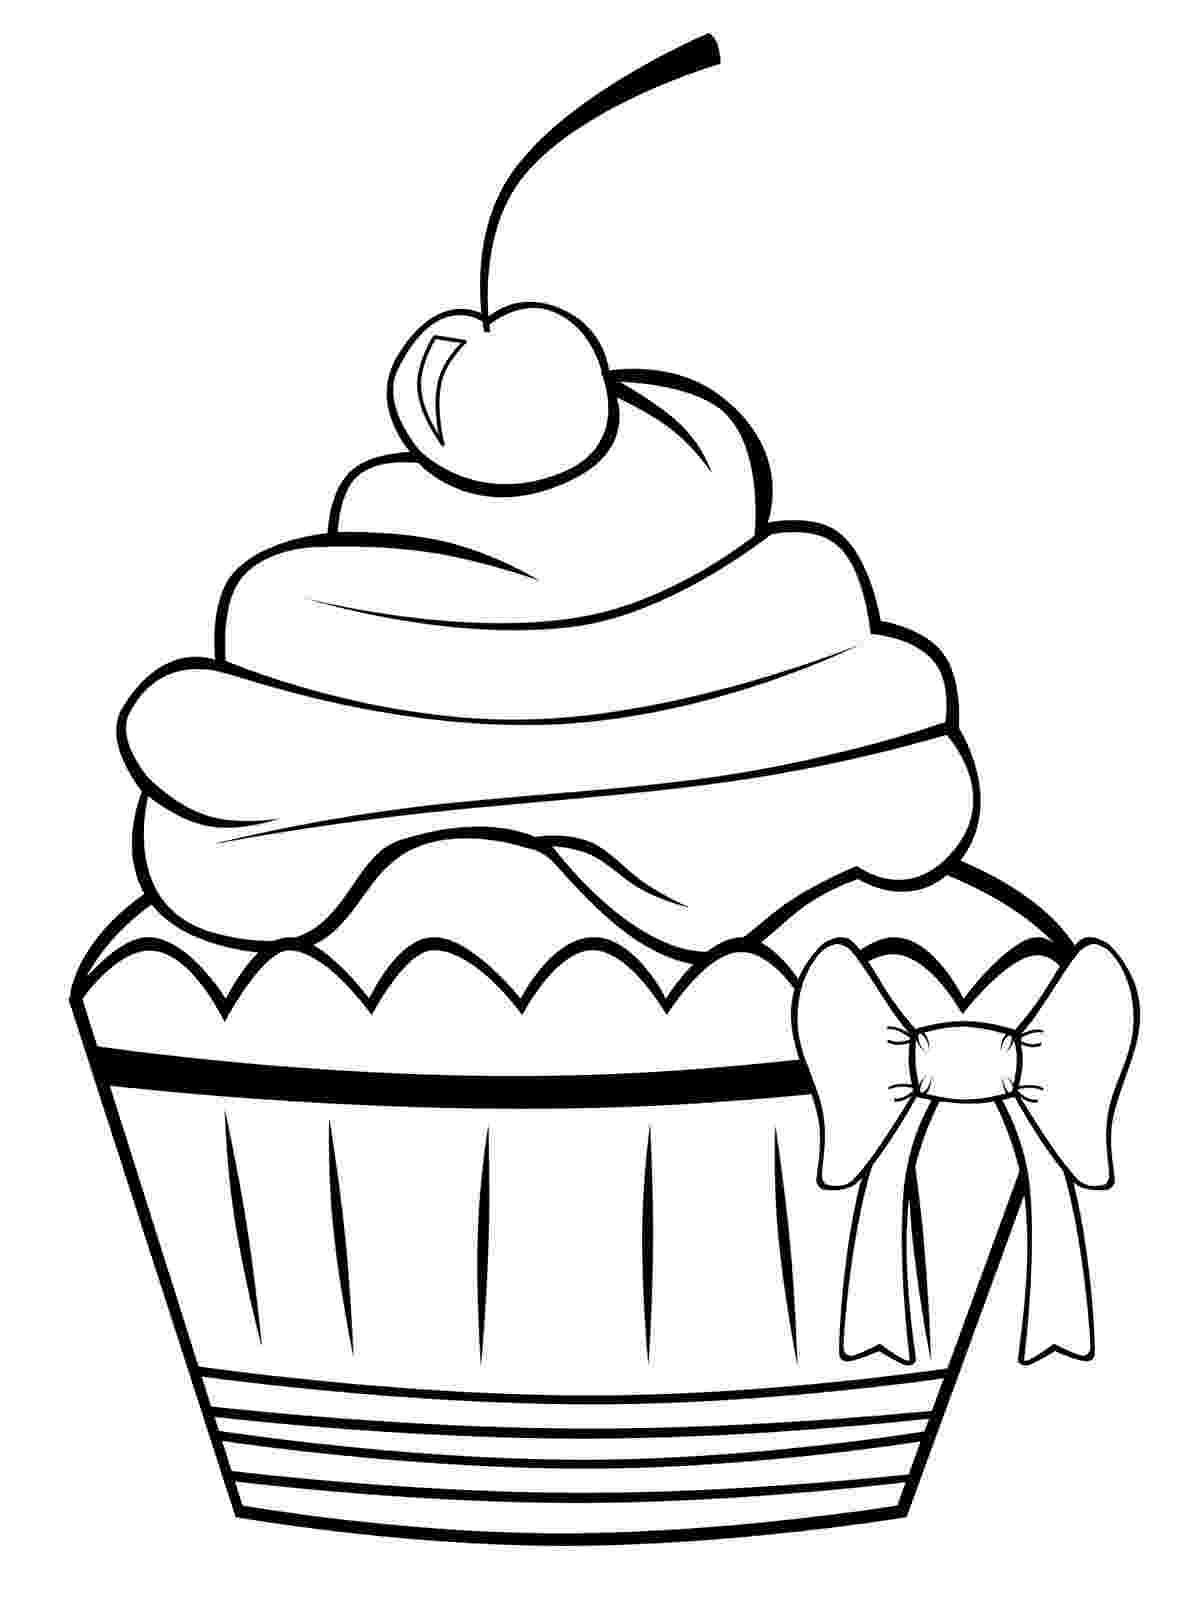 colouring pages cupcakes free printable cupcake coloring pages for kids cool2bkids colouring cupcakes pages